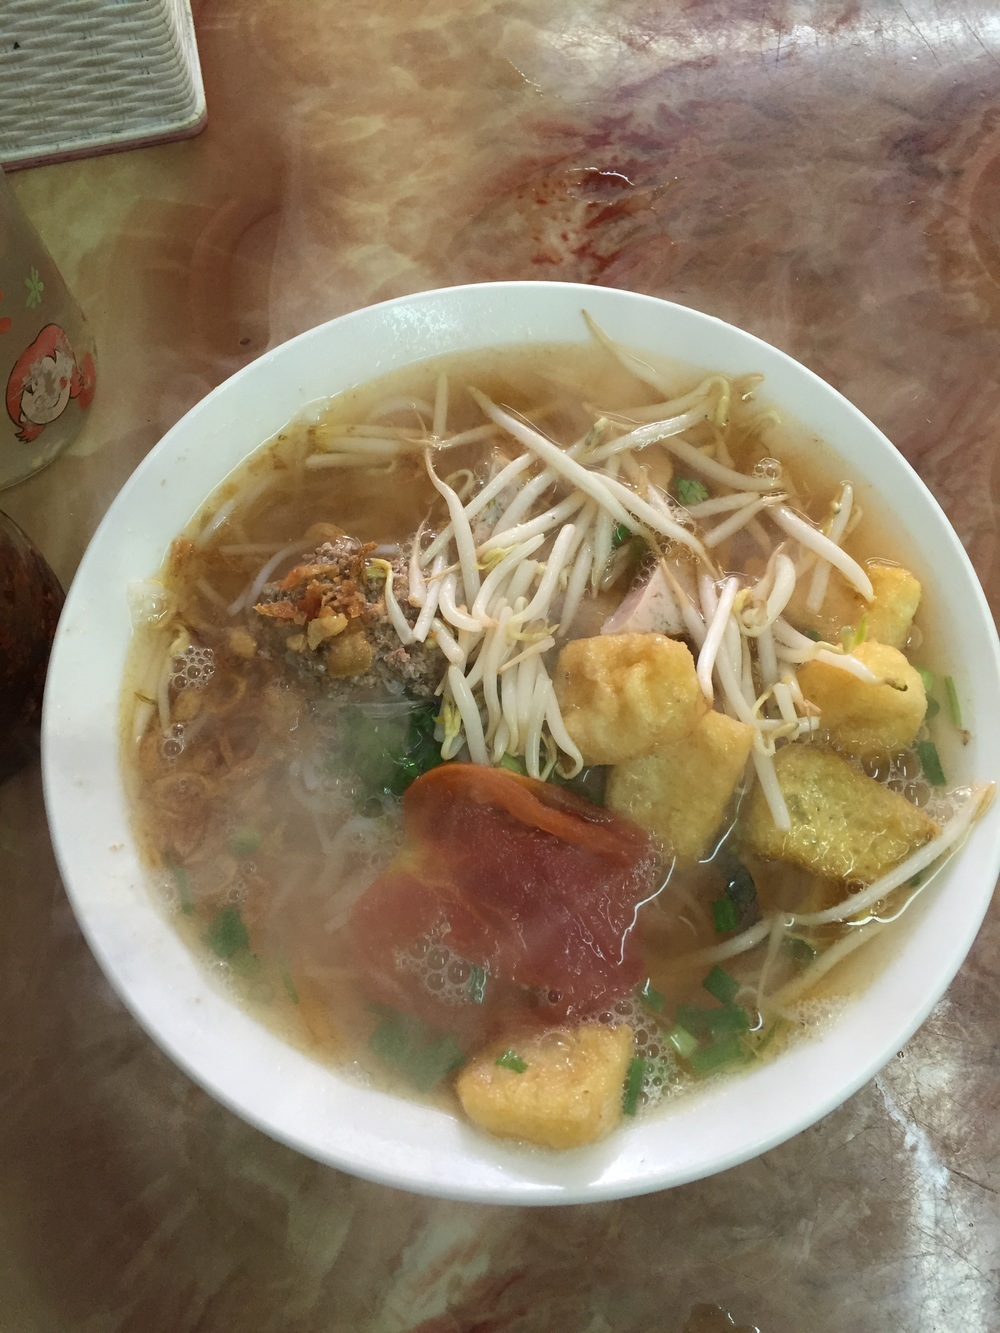 Hué is known for having some of the best food in Vietnam. No, this is not pho, it's bun rieu (noodles with tomato broth and crab).